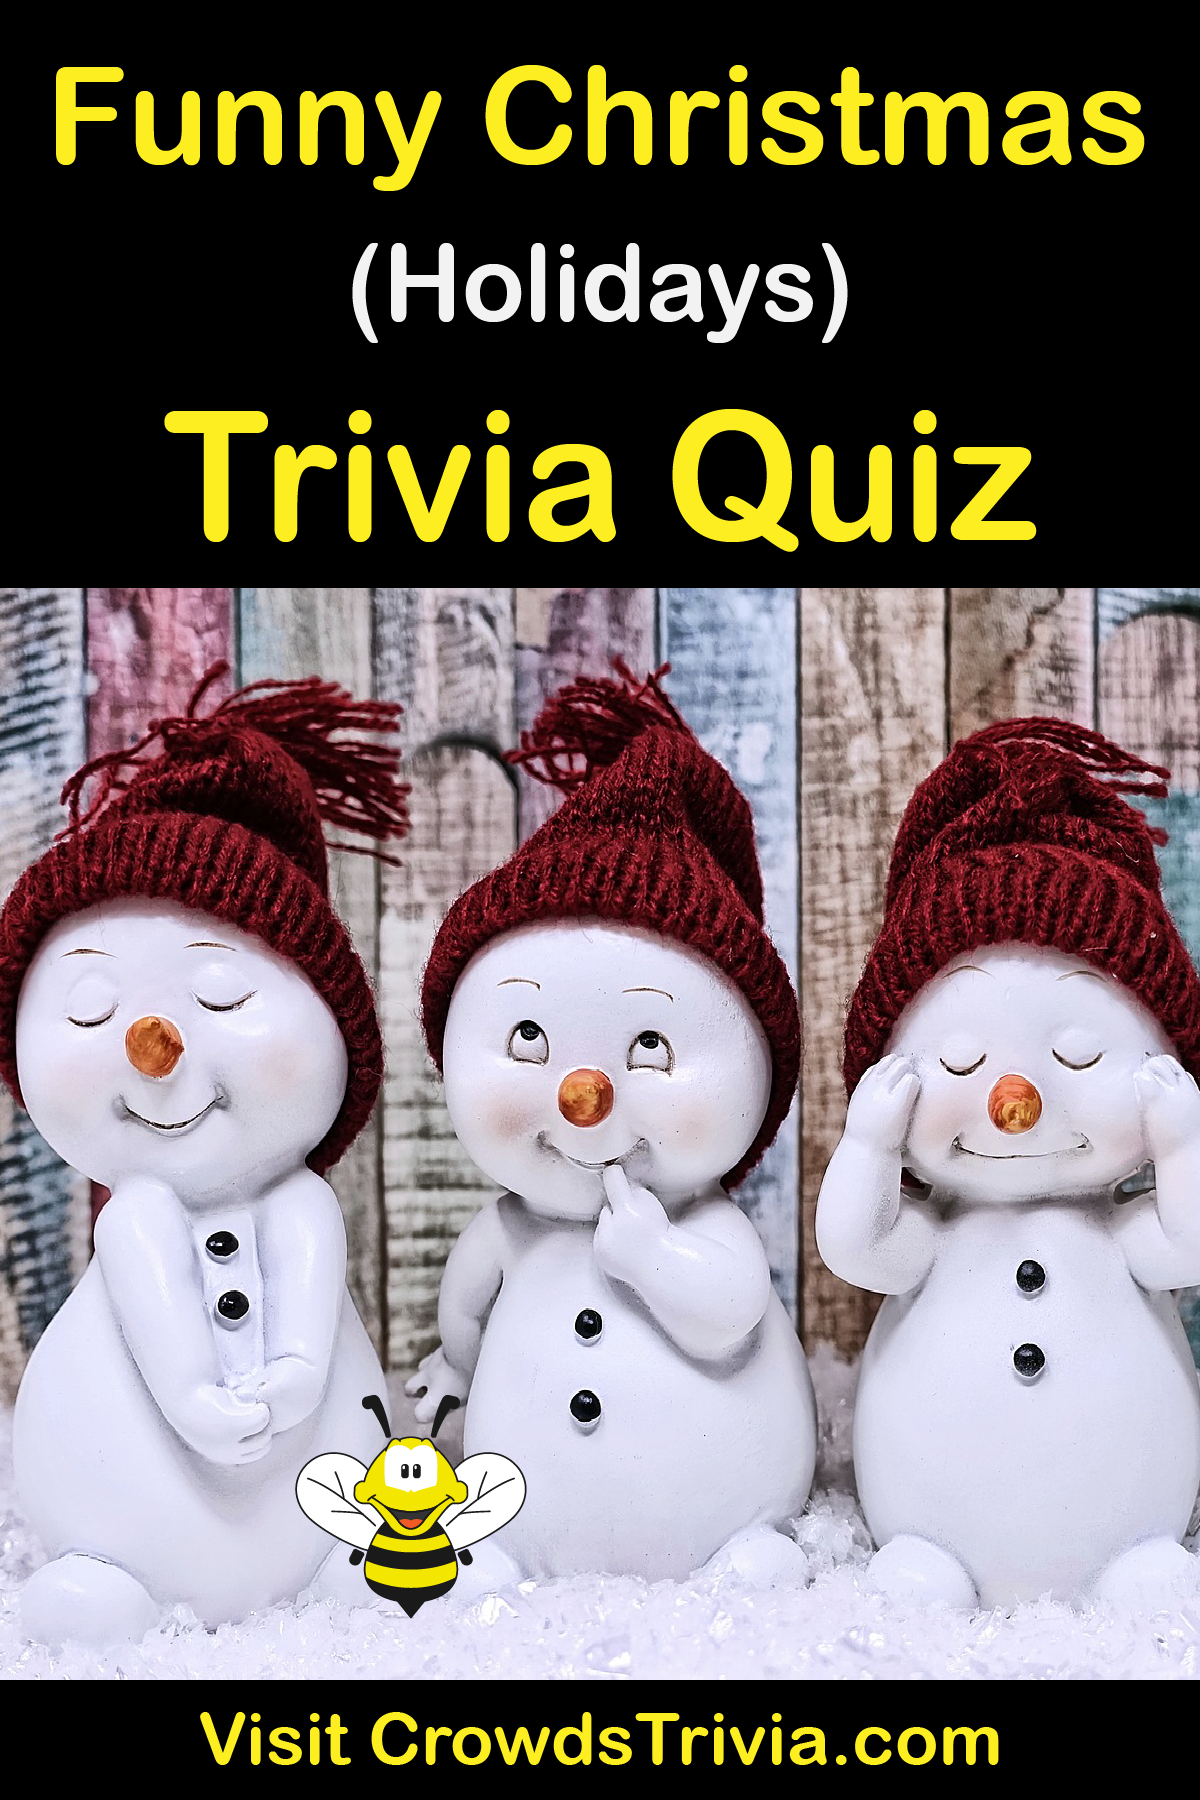 Christmas Facts 2020 Funny Funny Christmas   Trivia Quiz | Questions and Answers | Fun Facts